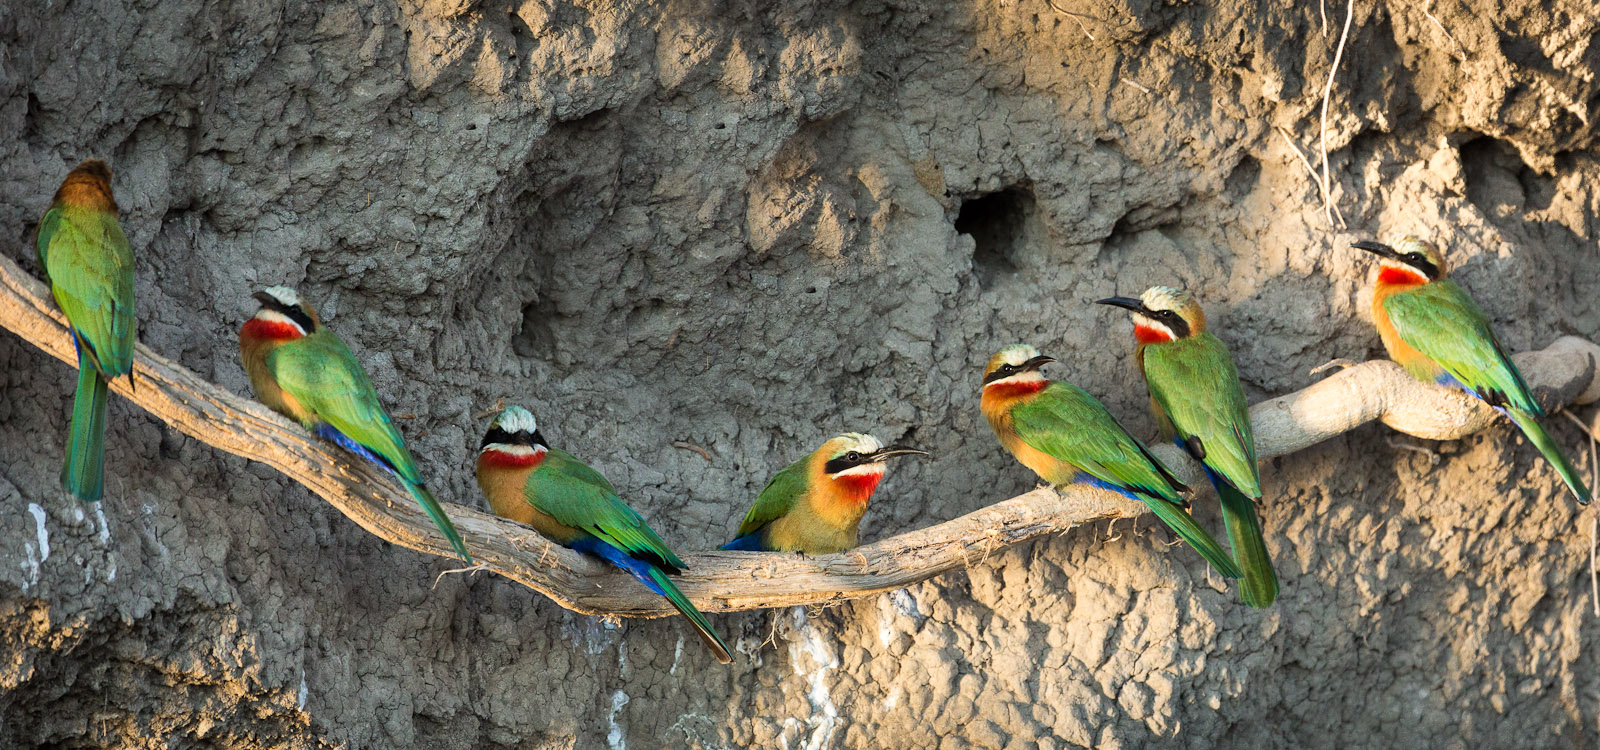 Cliff dwelling bee-eaters on the Zambezi River in Zambia just north of Vicotria Falls, Africa. We were treated to these amazing birds by Godfrey, one of the premier guides from Toka Leya Safari Camp. Photo © 2012 Jay Graham, all rights reserved